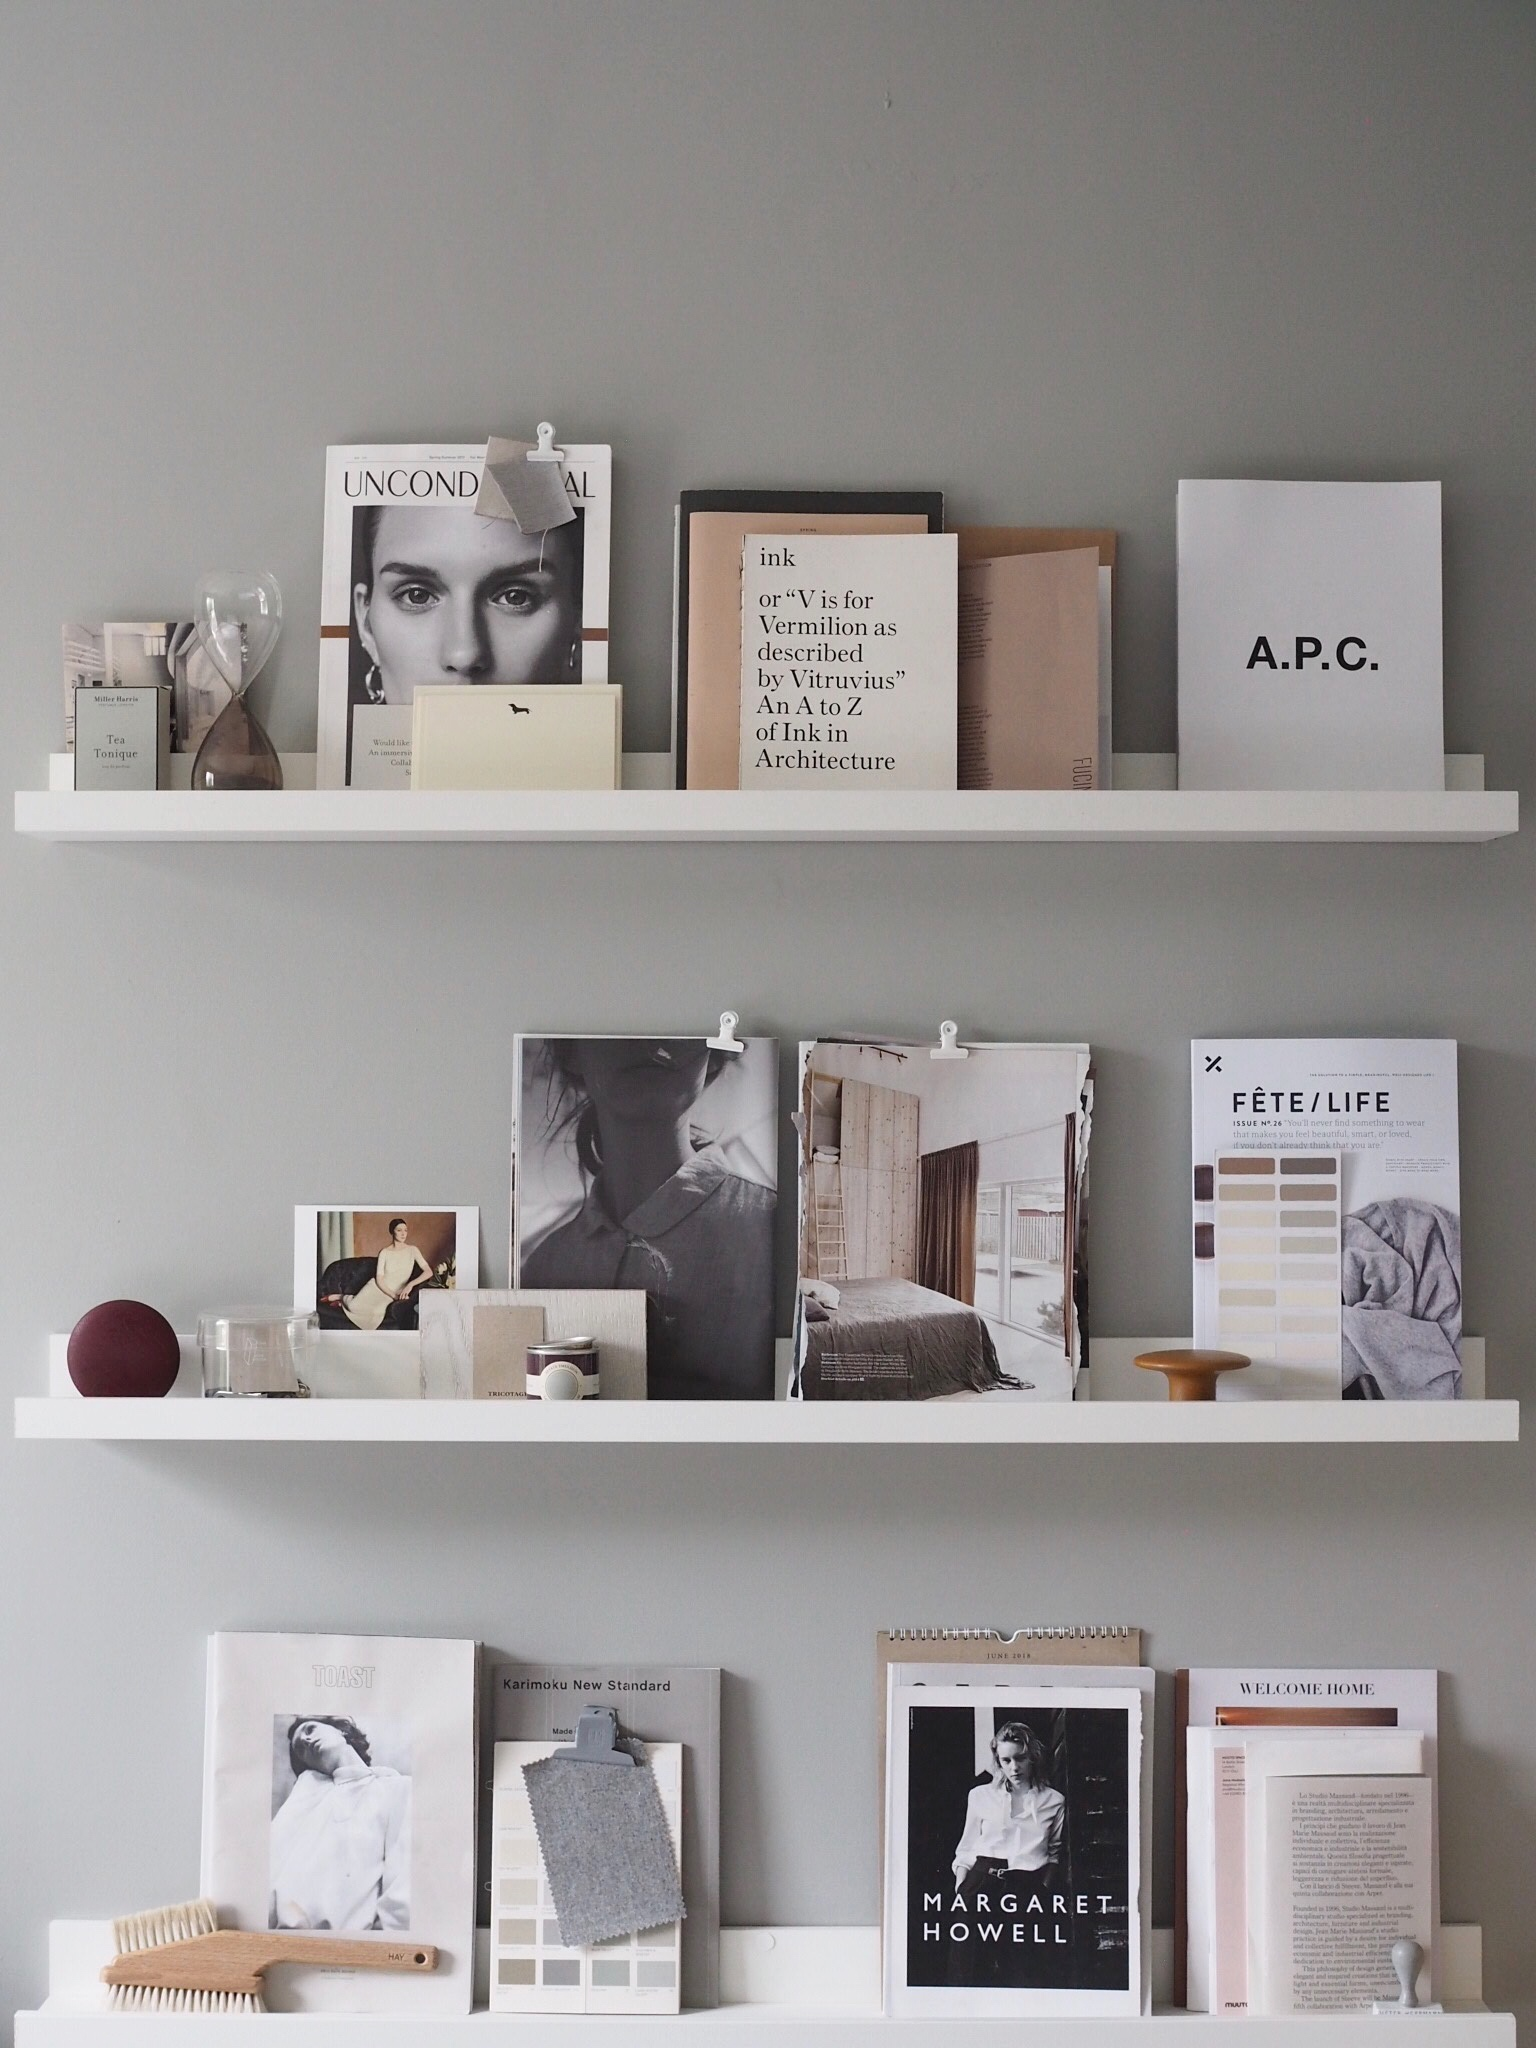 Picture ledges create a living mood board in a designer's work space.